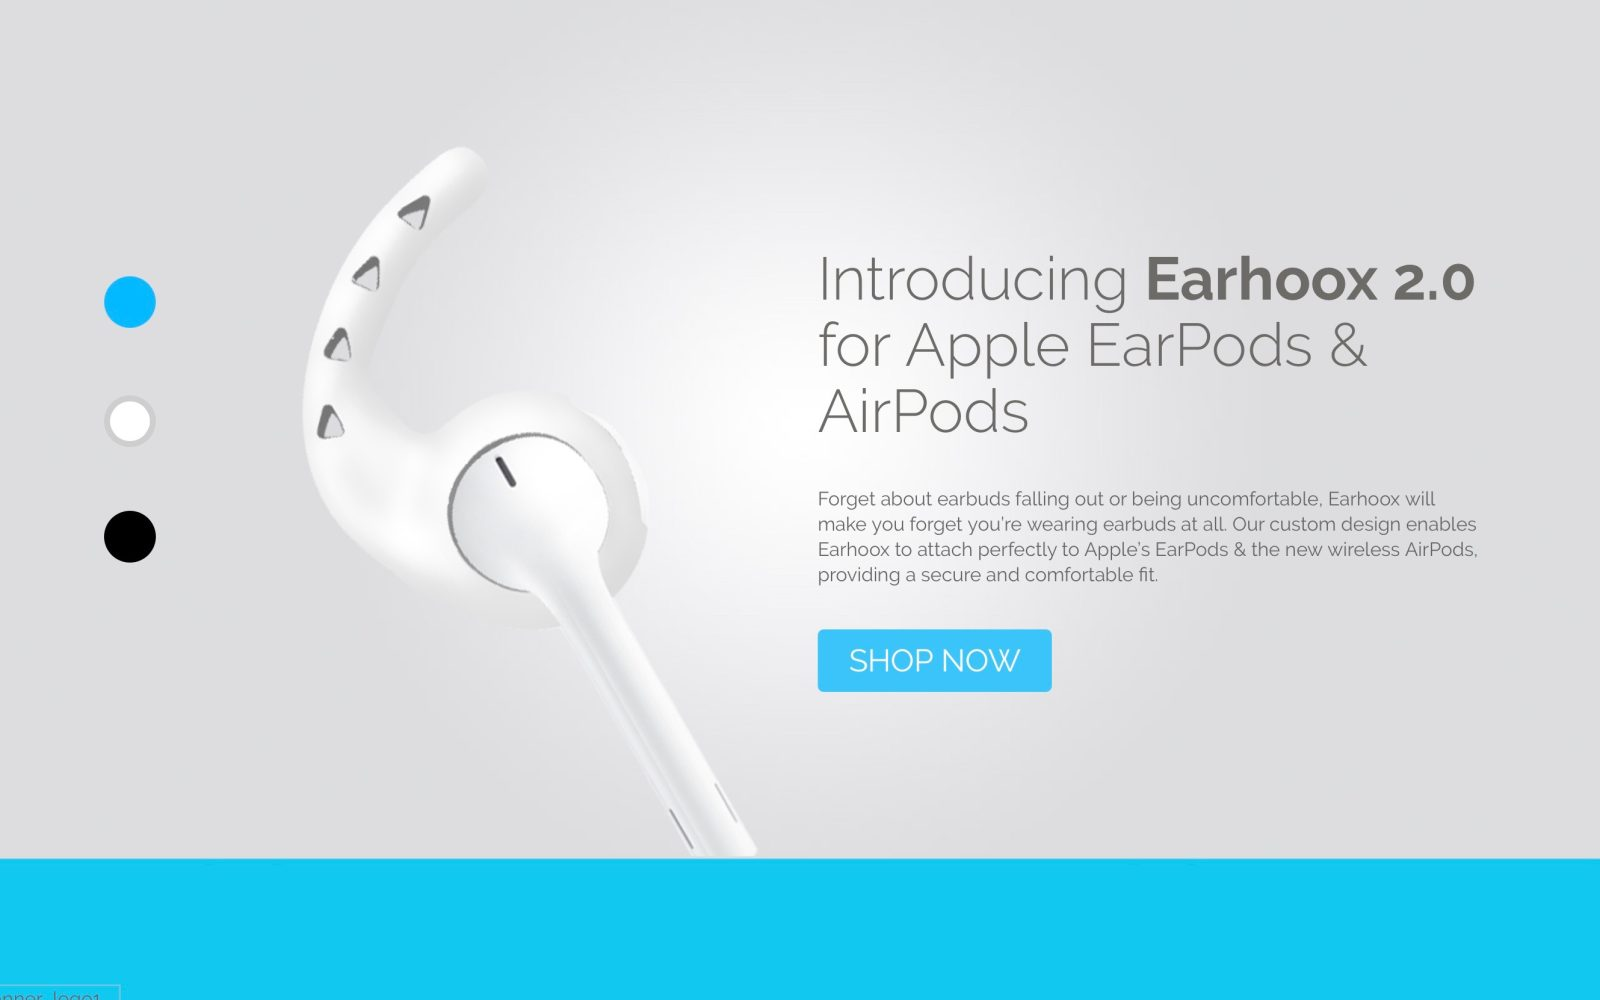 e4c9737e1c2 How to keep AirPods in your ears during physical activity with this $10  accessory